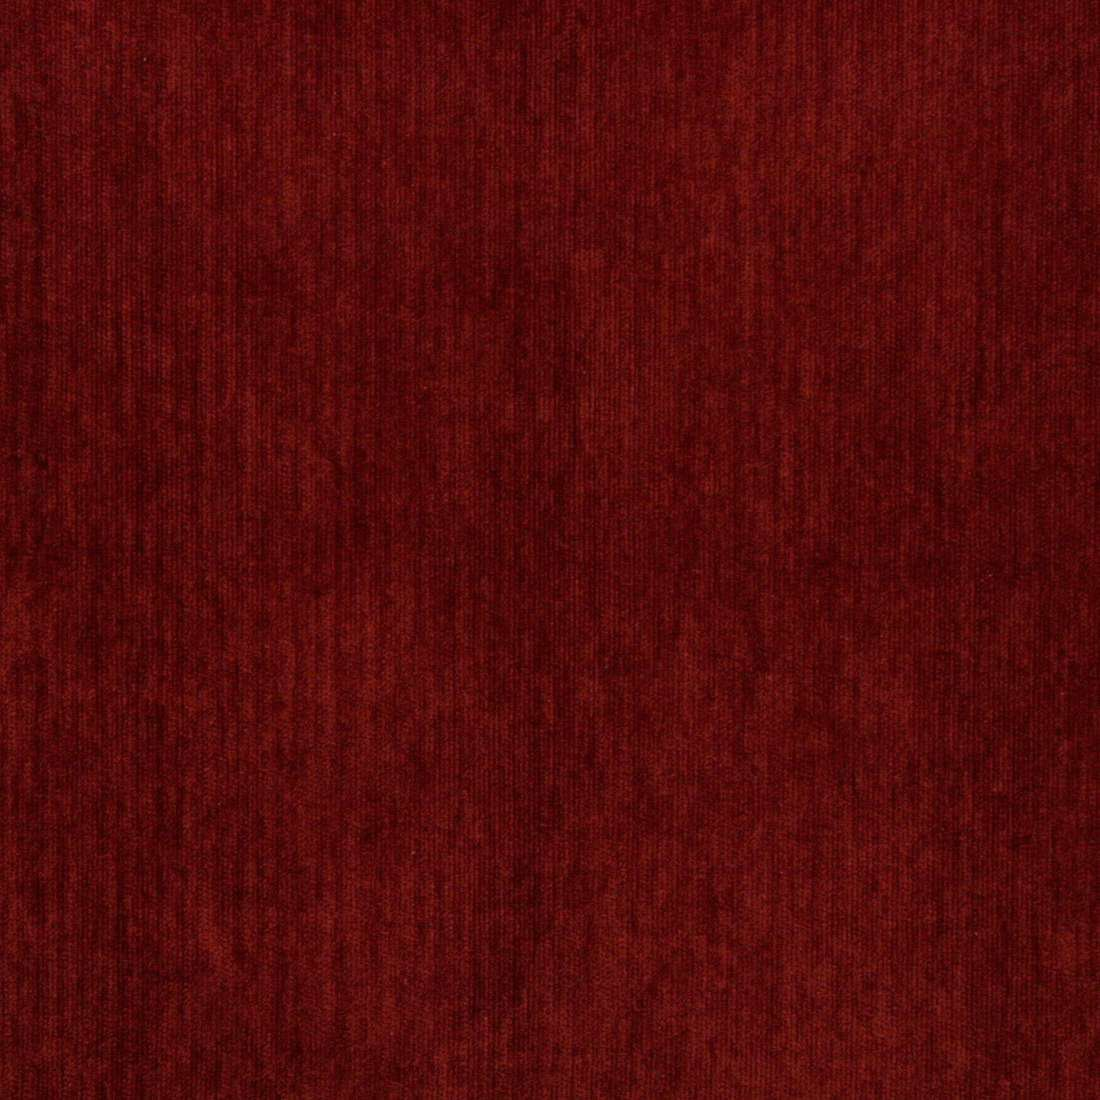 chenille sofa fabric care leather sofas in musina south africa 54 quot wide e474 burnt red commercial residential